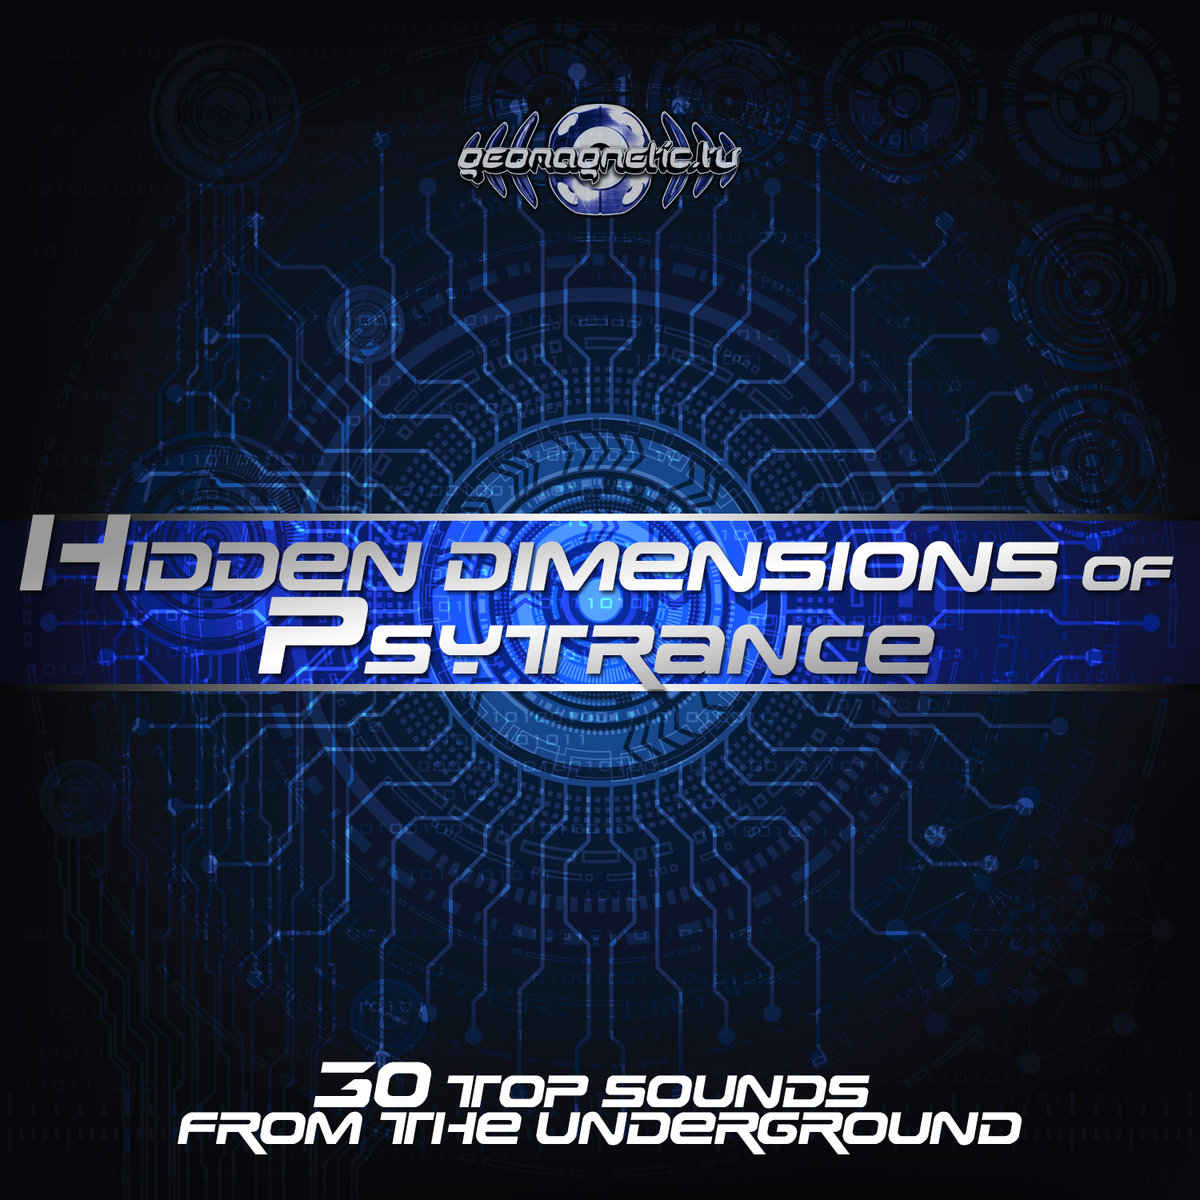 Wavelogix - Spaced Paced @ 'Various Artists - Hidden Dimensions of Psytrance (30 Top Sounds From The Underground)' album (electronic, goa)